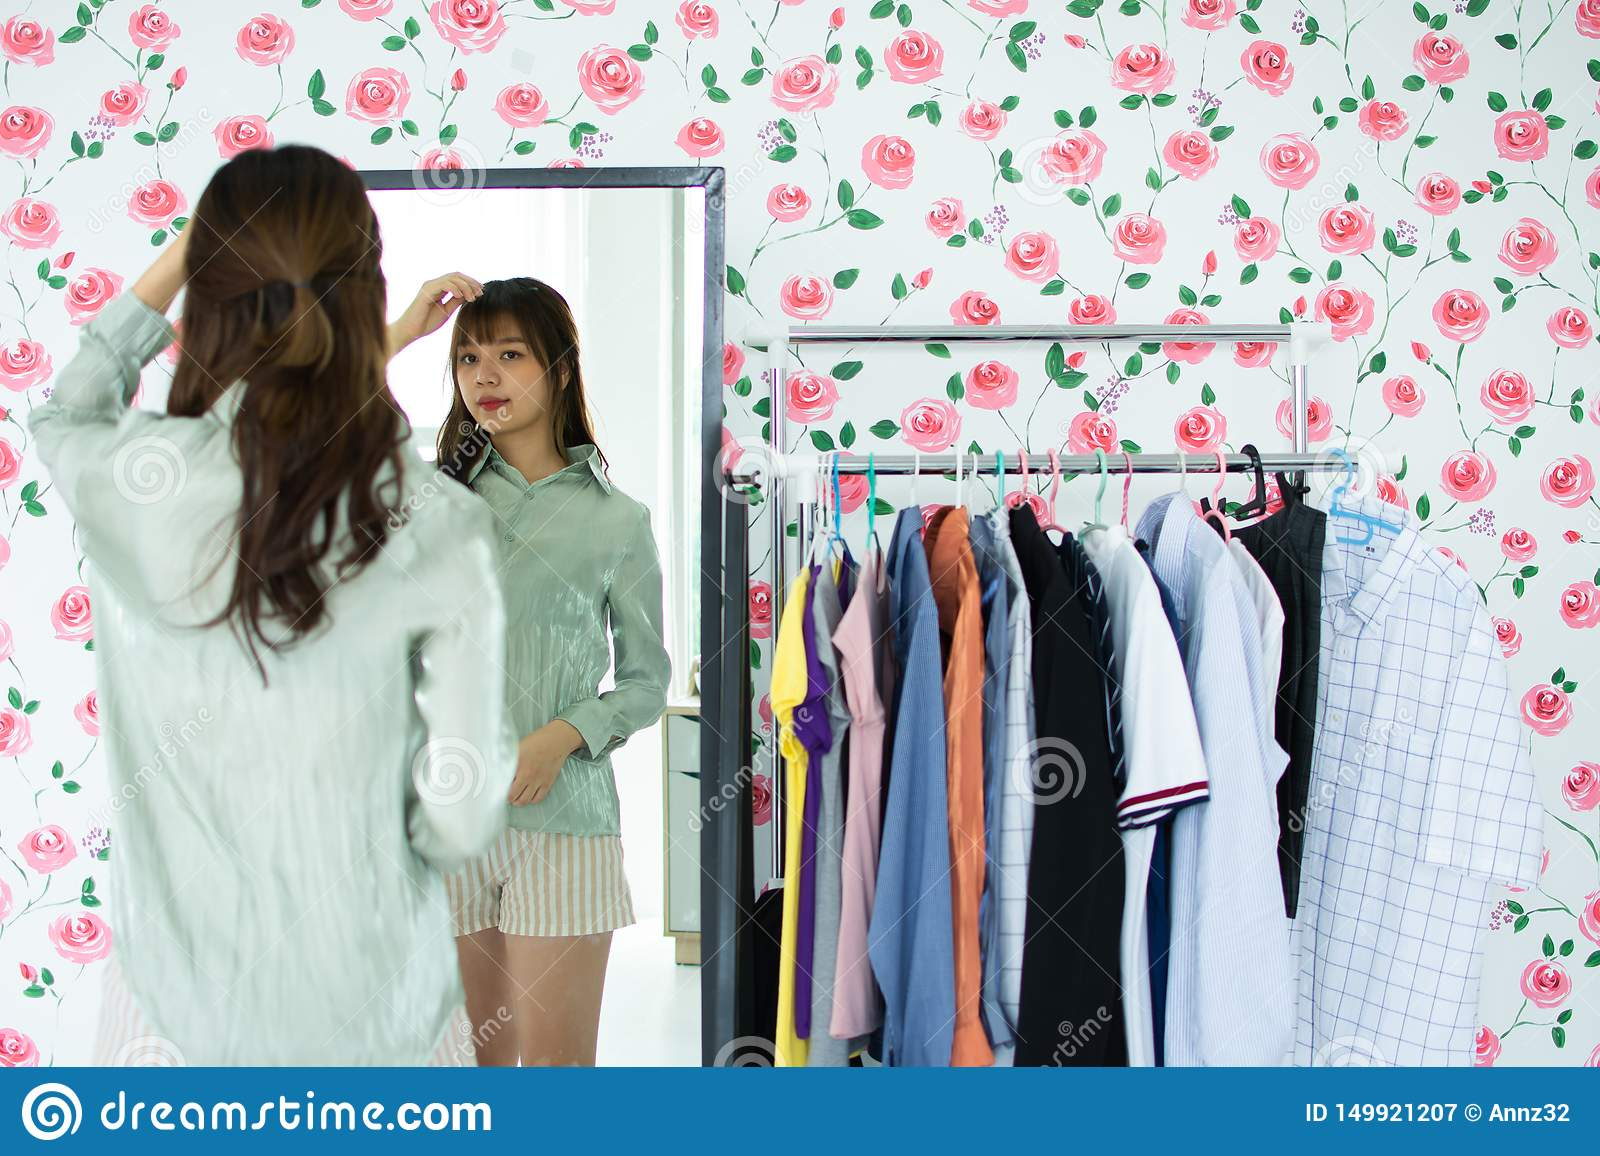 A cute woman is looking at the mirrow in her room